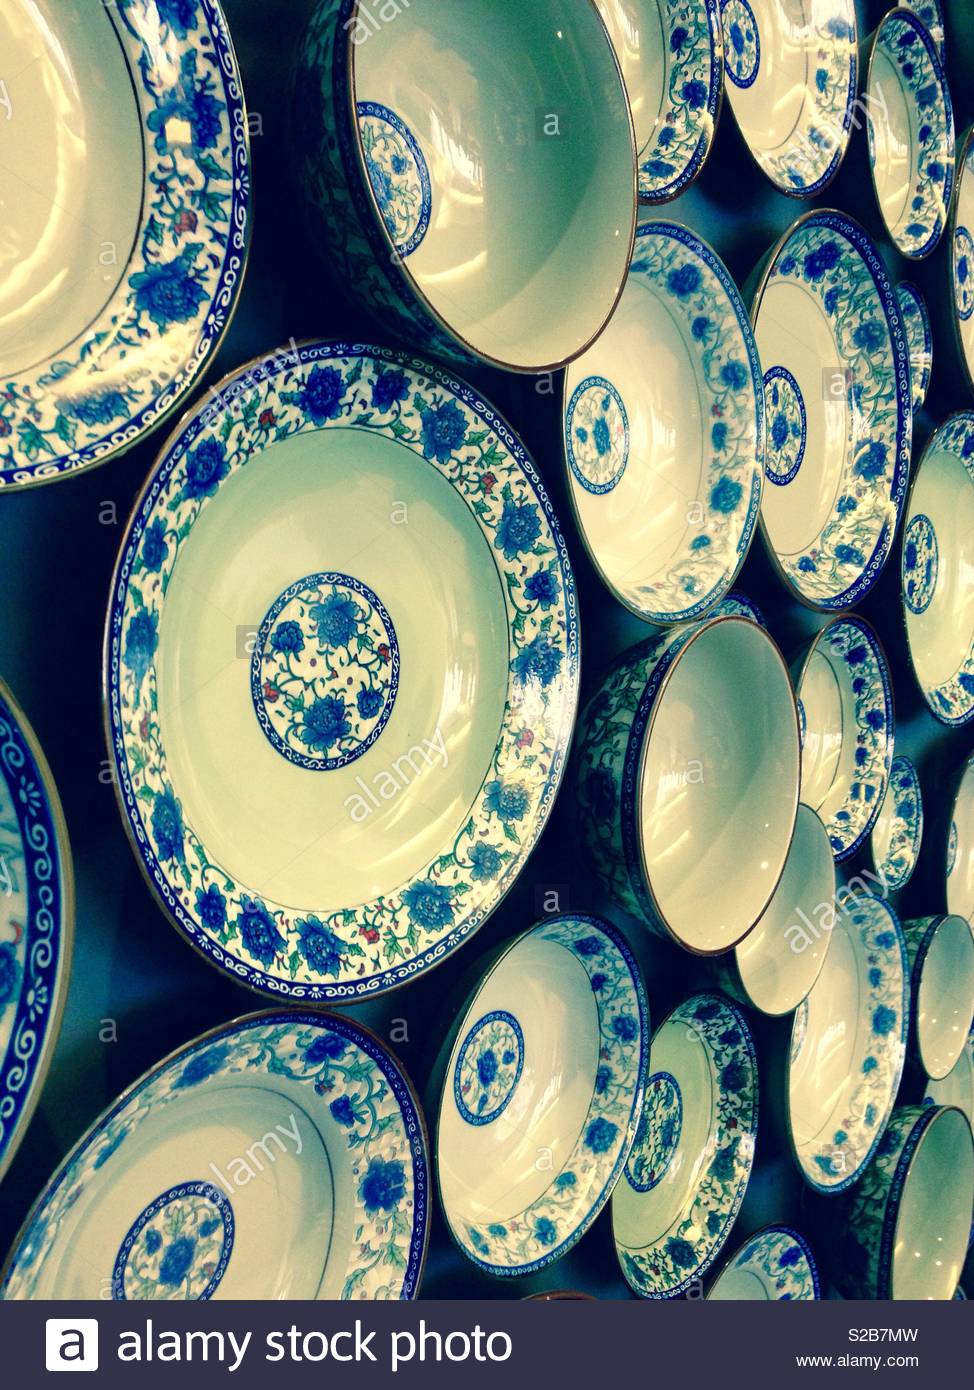 A Plate On A Wall Stock Photos & A Plate On A Wall Stock Images - Alamy